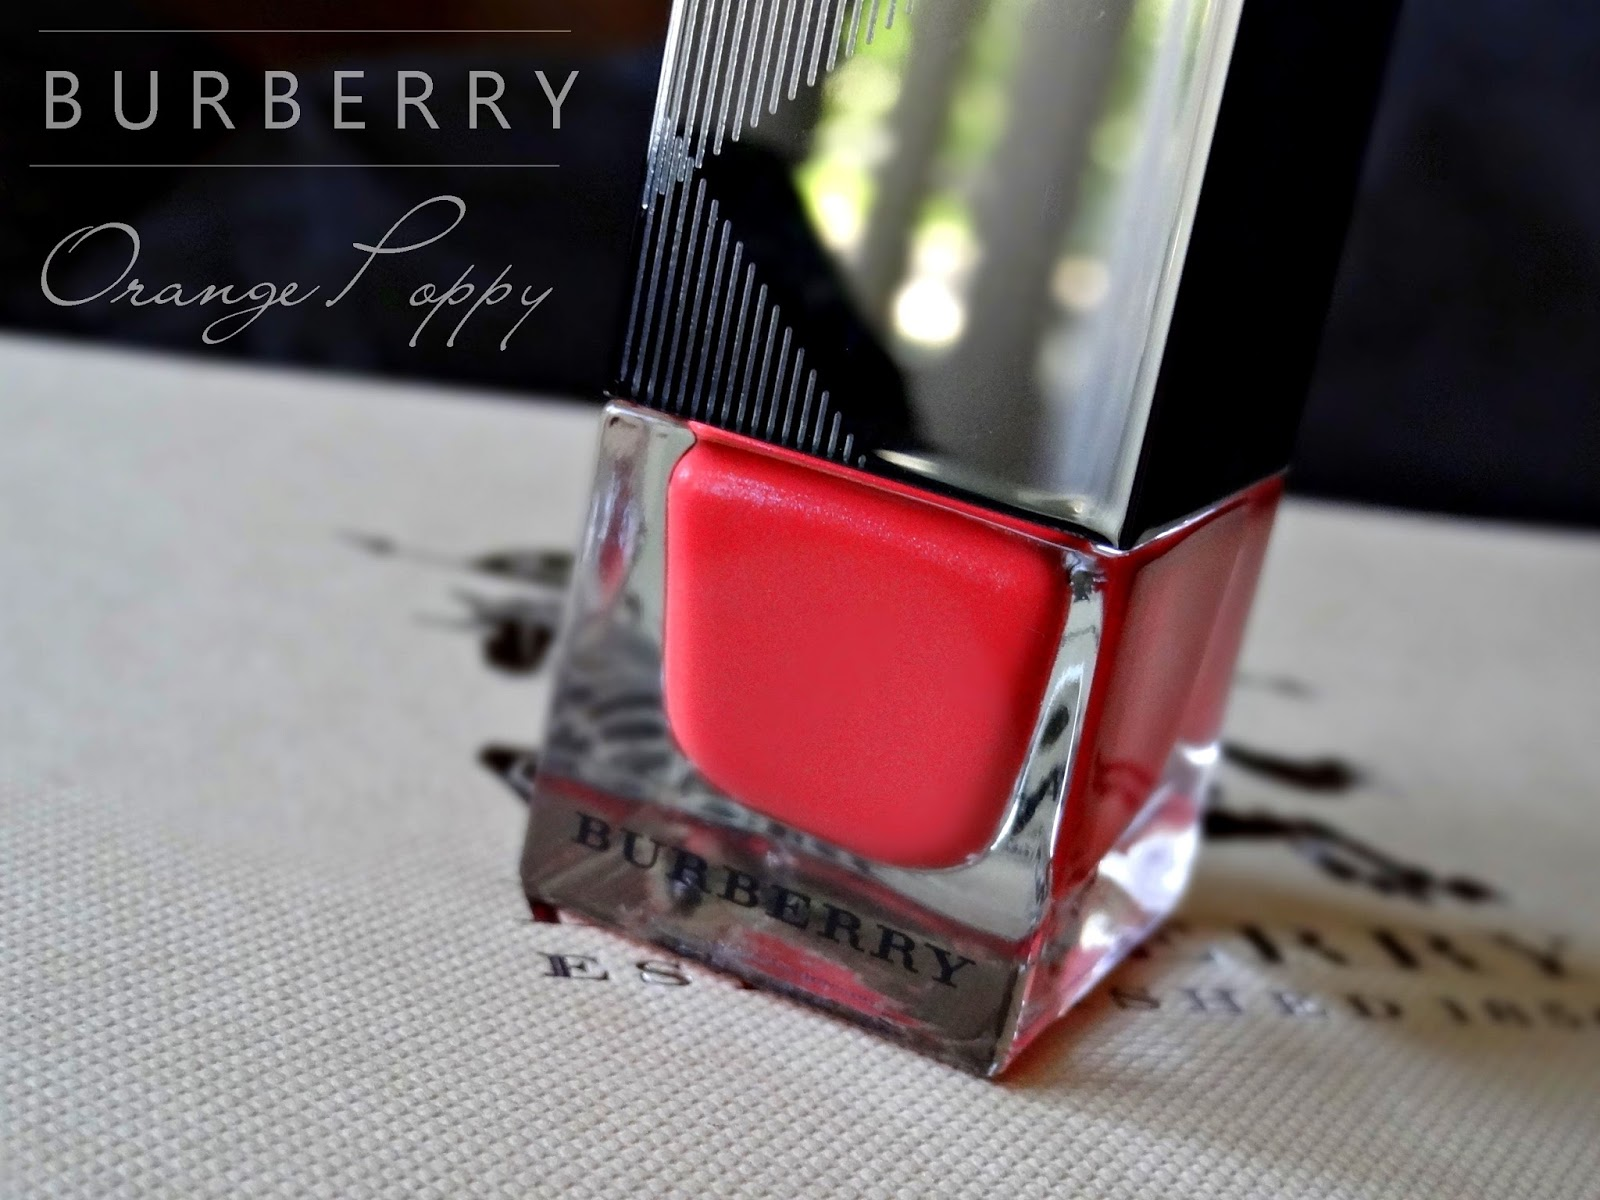 Burberry Summer Showers Makeup Collection Nail Polish in Orange Poppy No 221